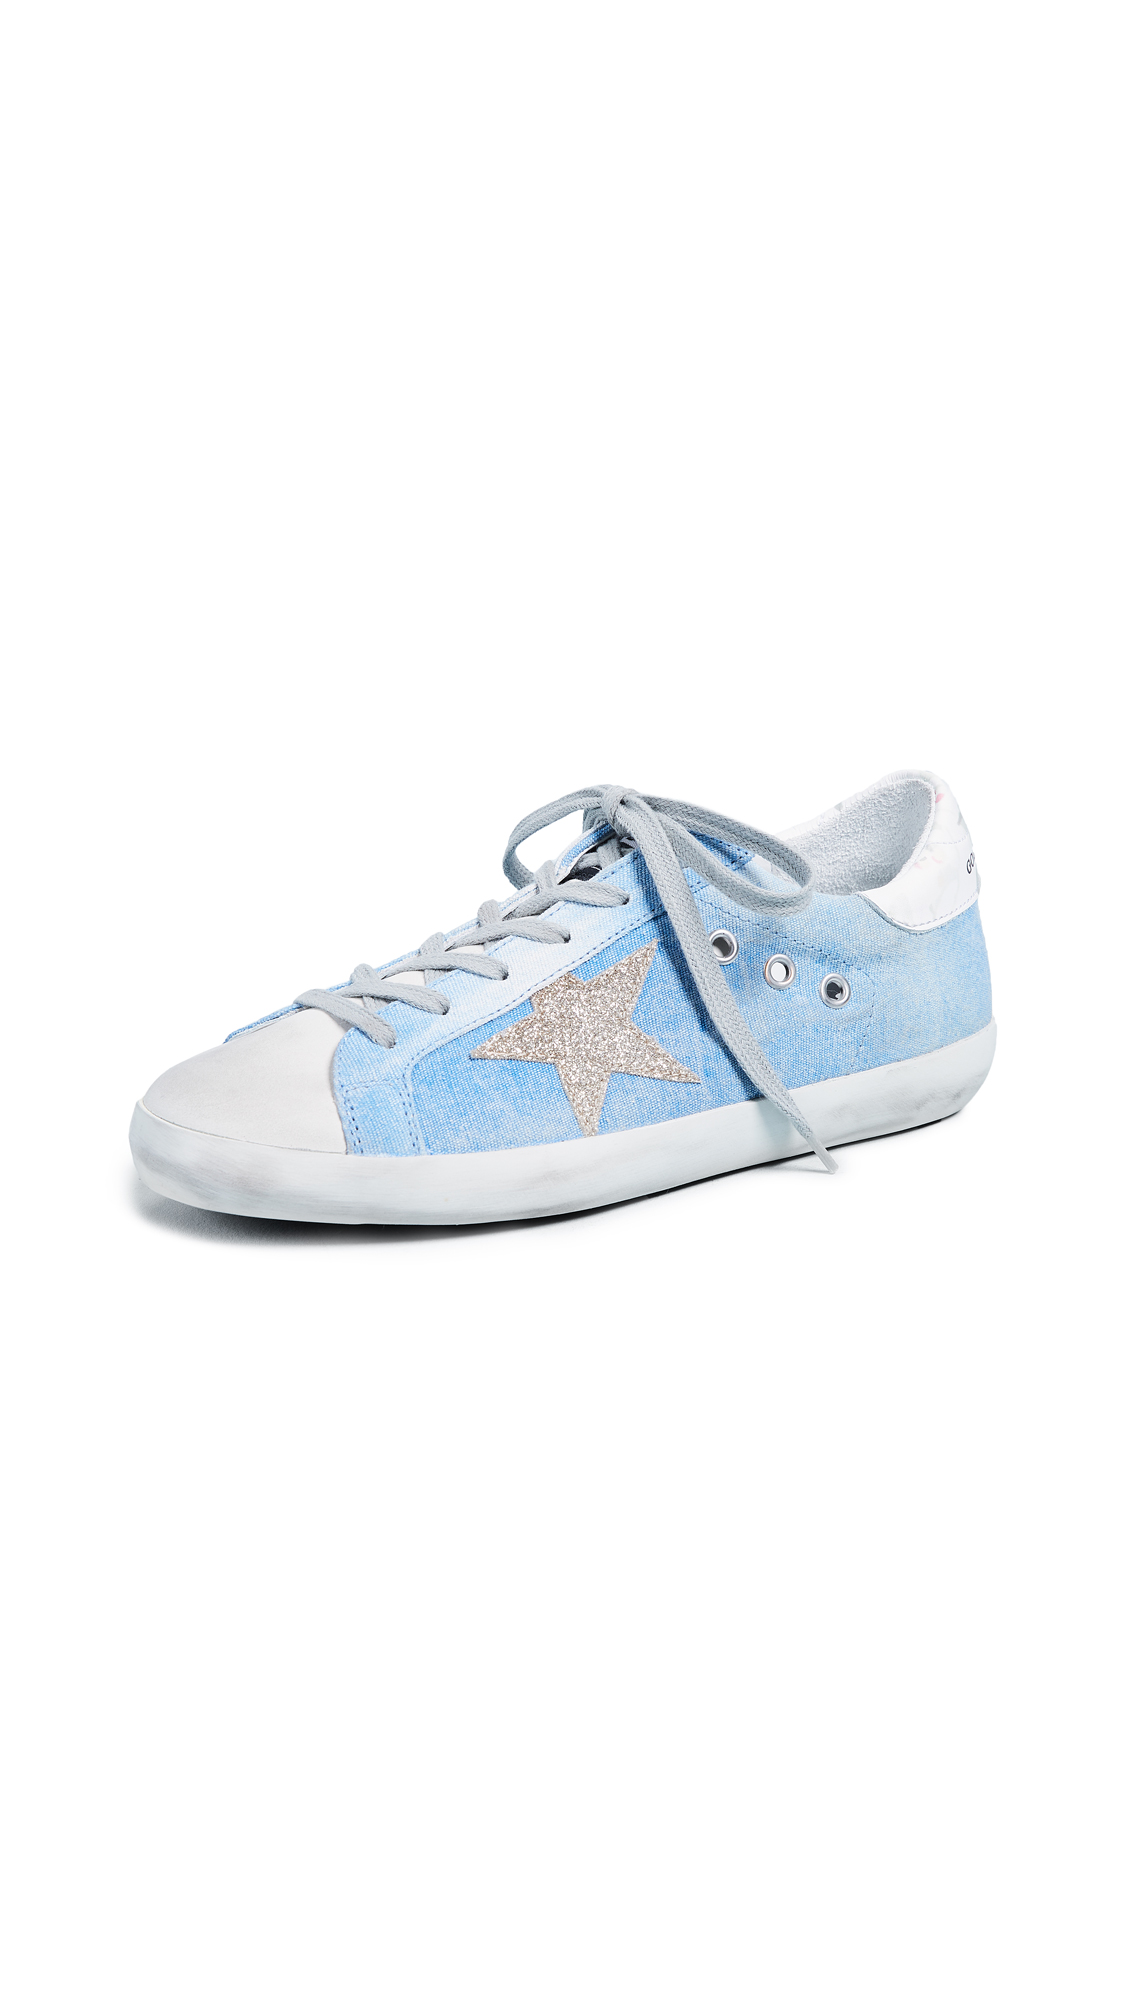 Golden Goose Superstar Sneakers - Denim/Floral